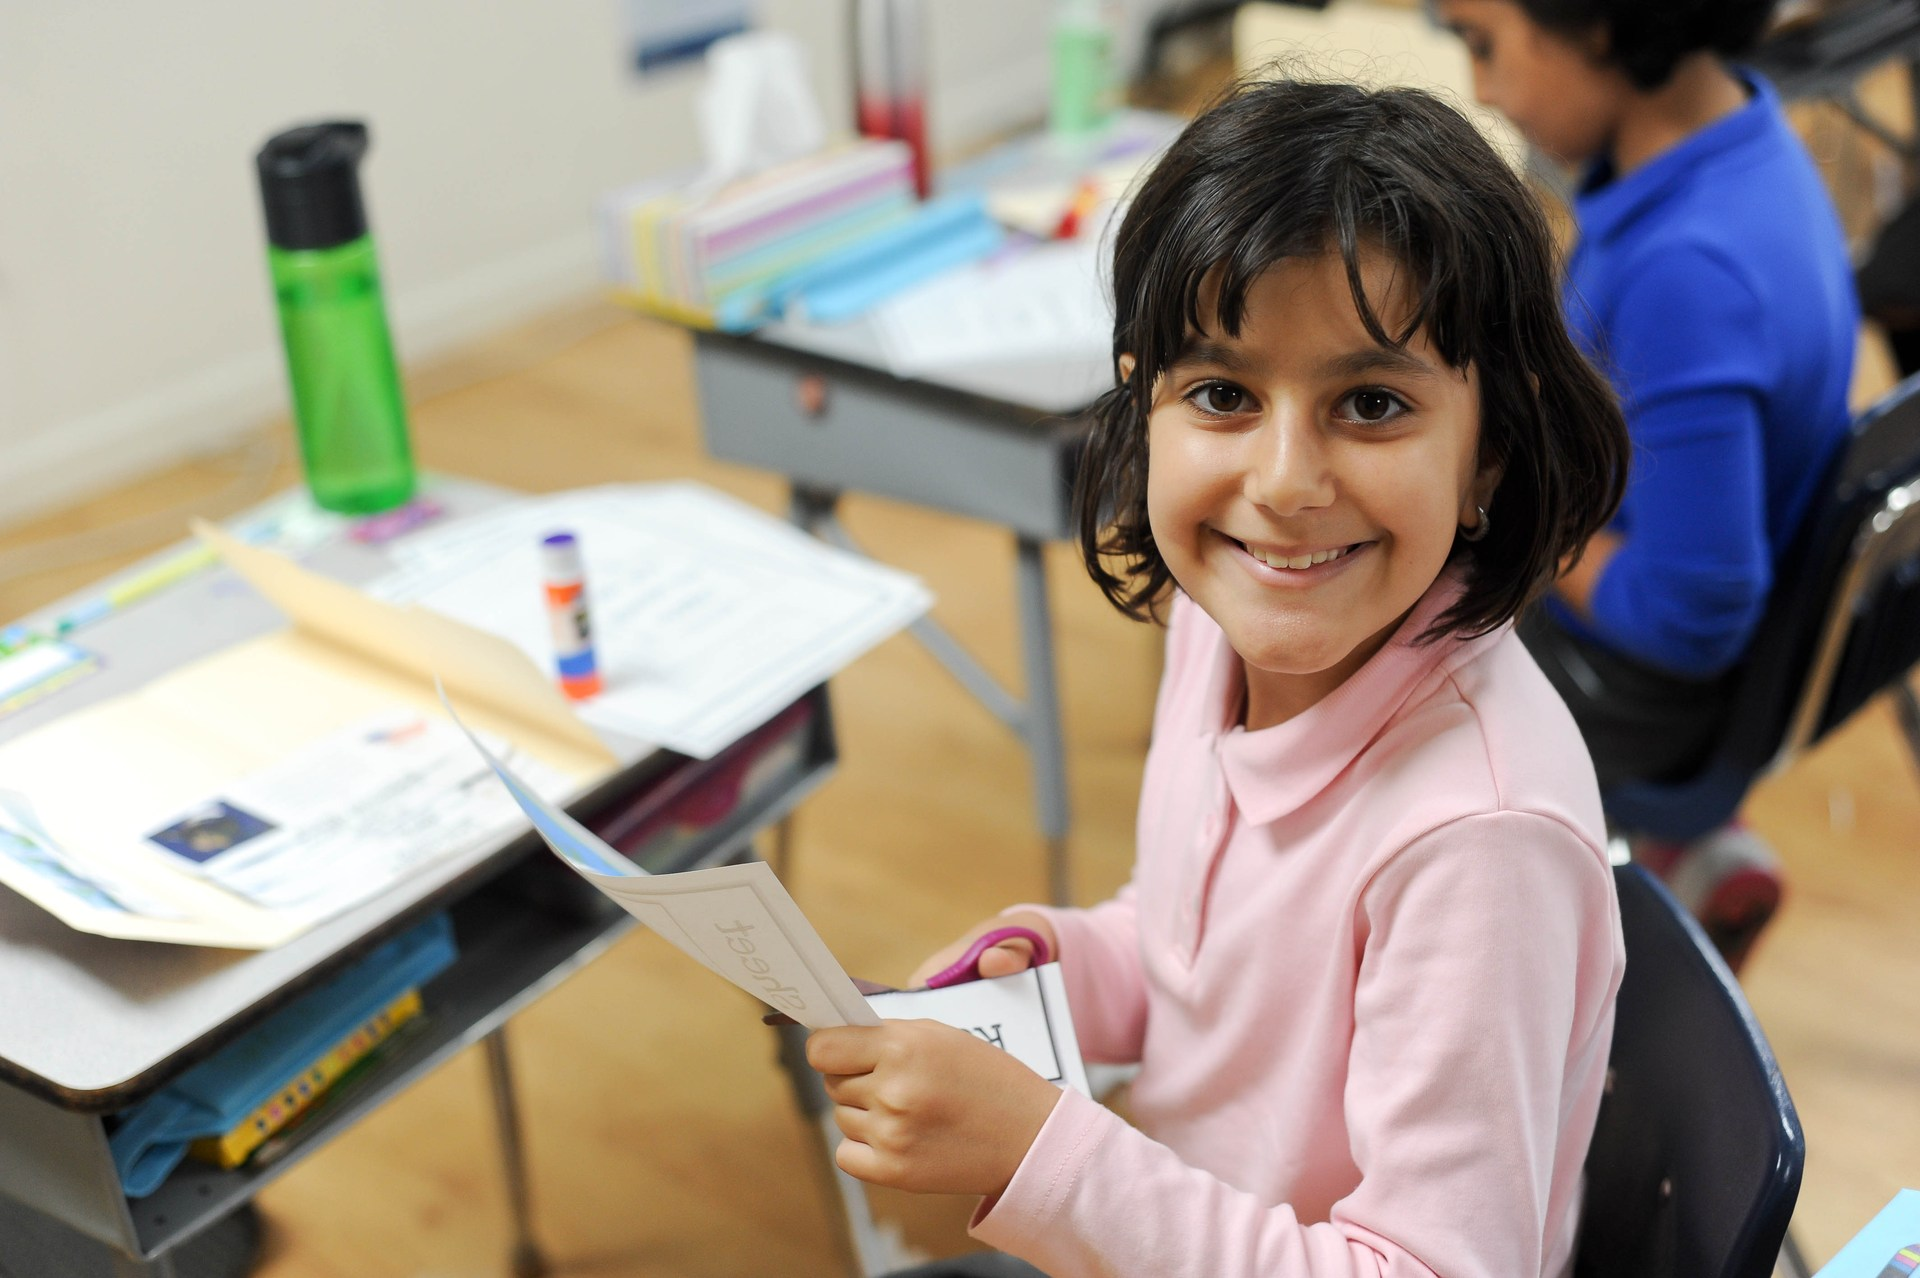 girl cutting a paper in classroom